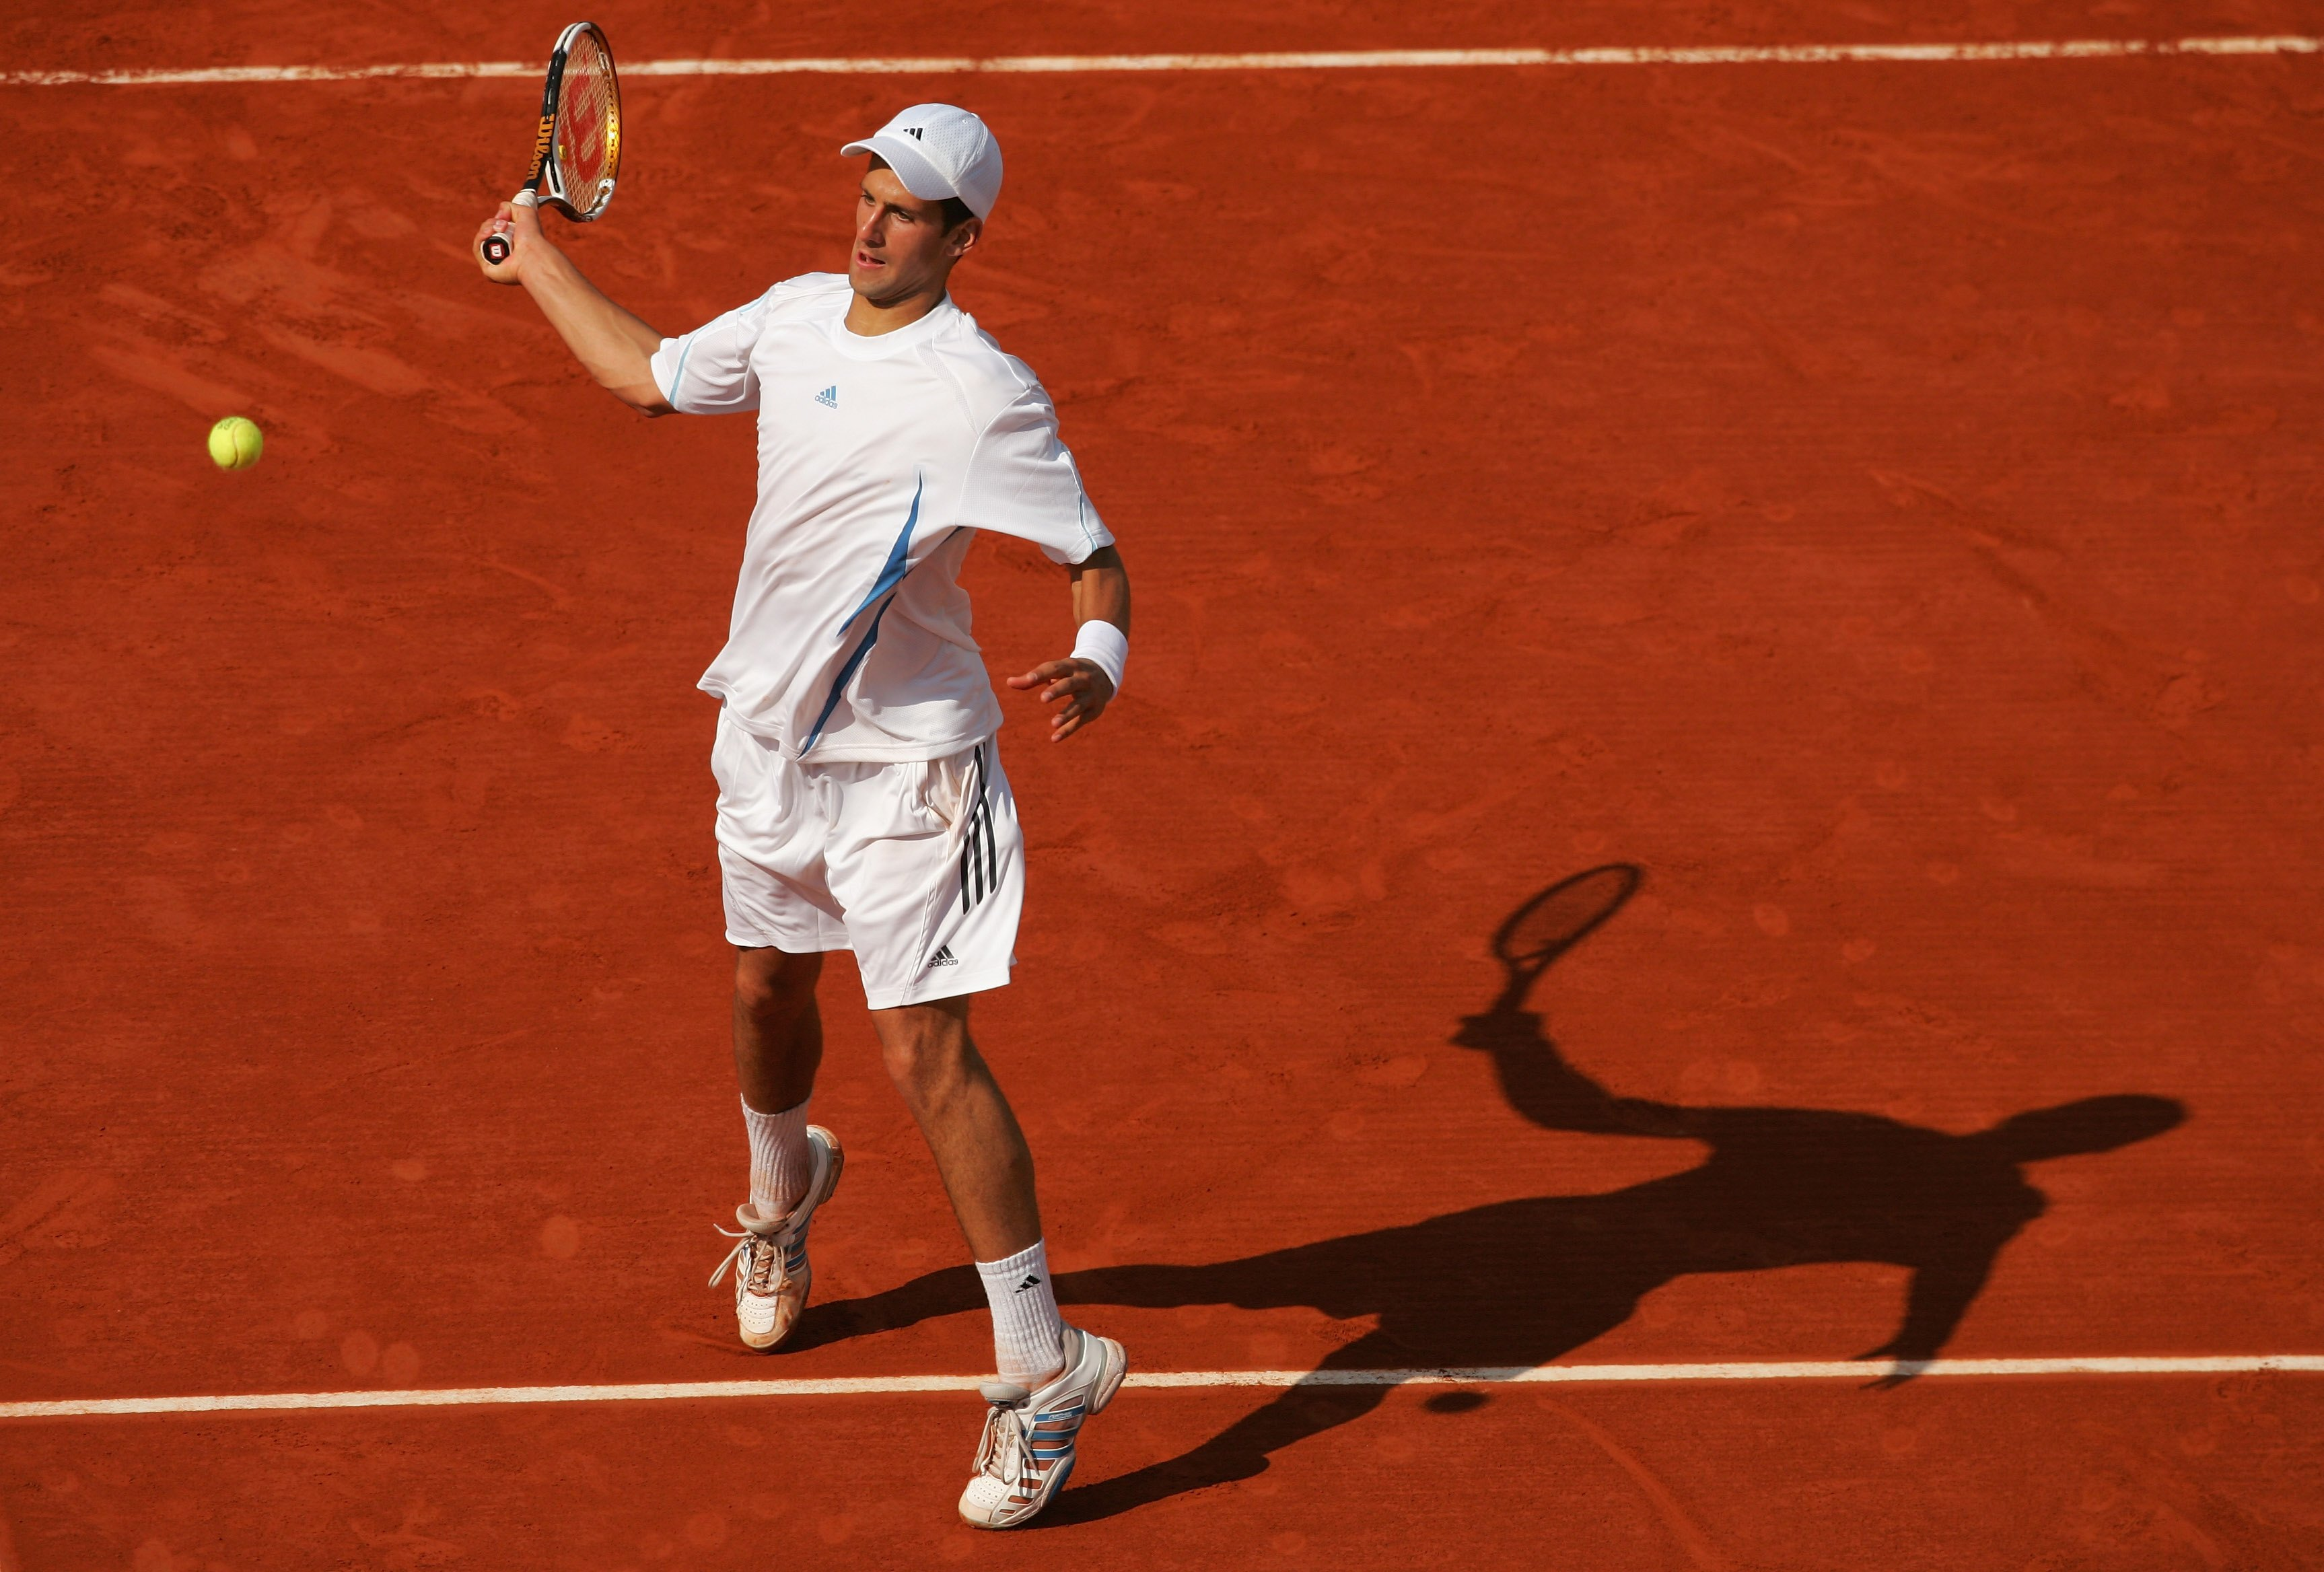 For a player who is known now for snug-fitting attire, it's easy to forget how billowy it once was, at the French Open.